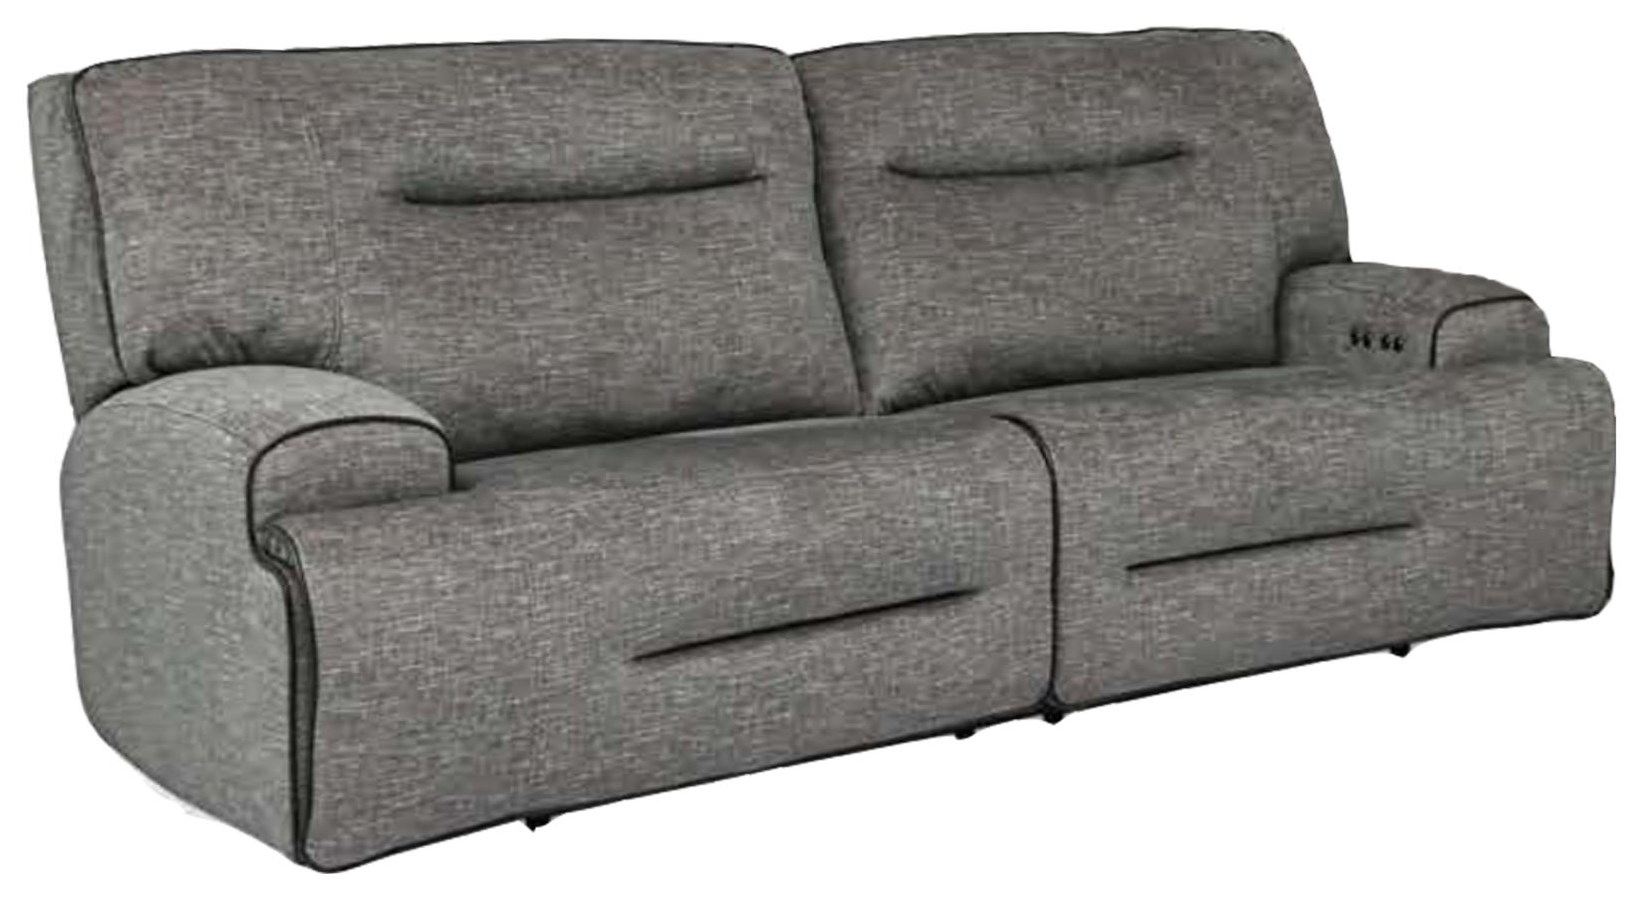 90016 Power Reclining Sofa with Power Headrest by Cheers at Beck's Furniture